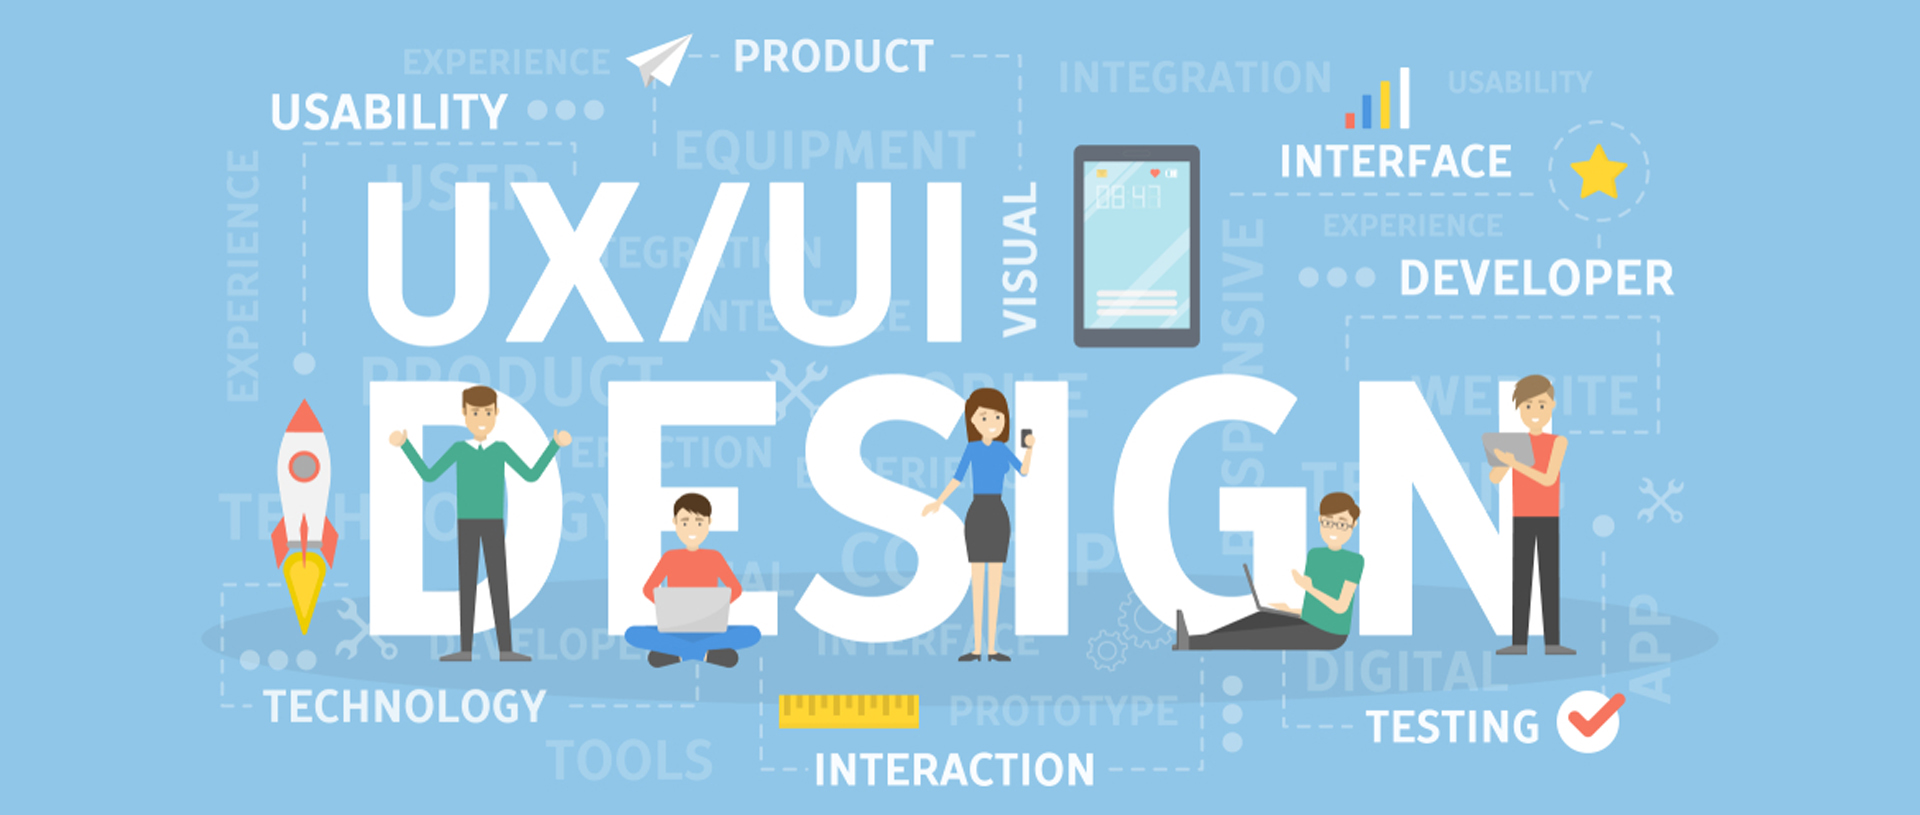 How to do better with UX design? Check these small tips!